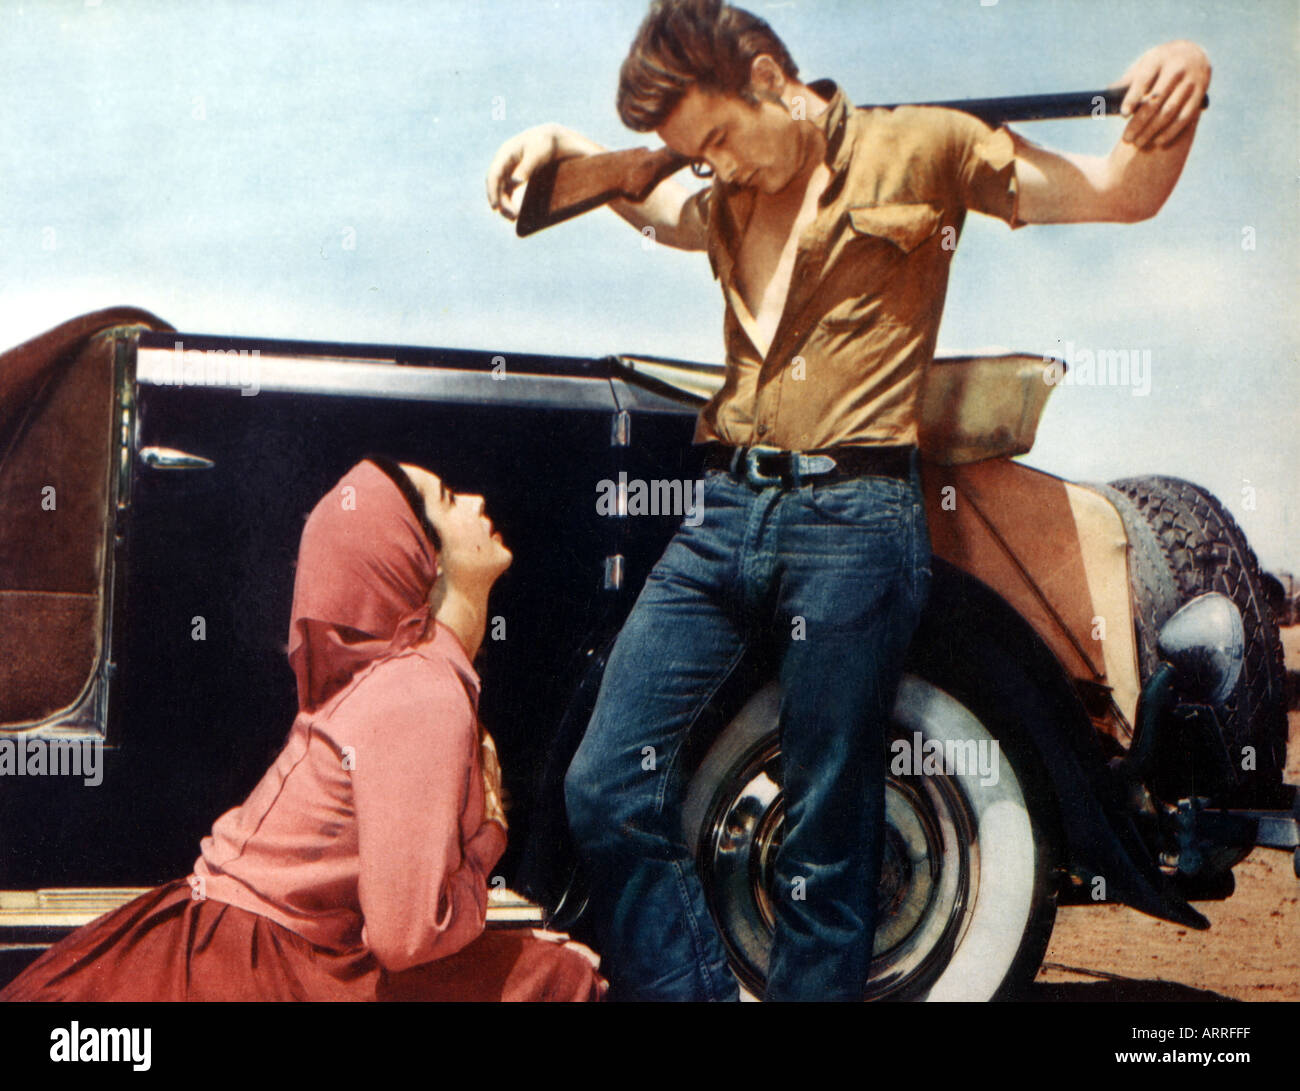 GIANT 1956 film with Elizabeth Taylor and James Dean this is the so Stock Photo: 2998270 - Alamy